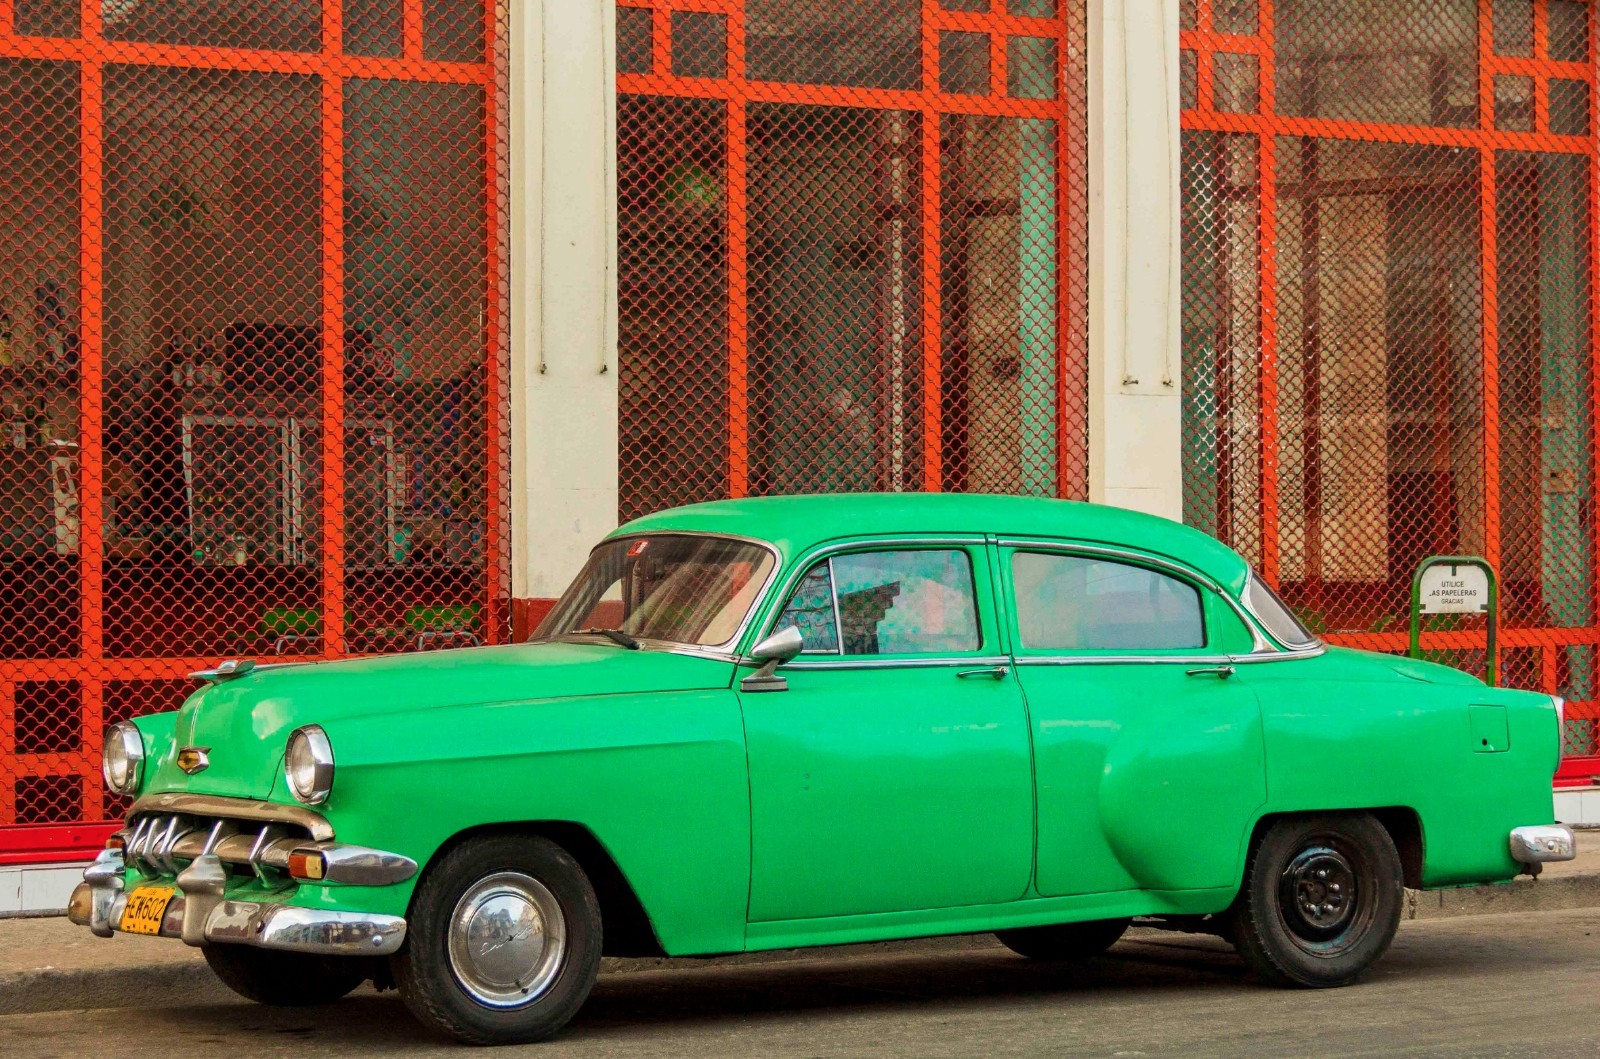 Cuba Lifts Ban On New Cars After Almost 55 Years